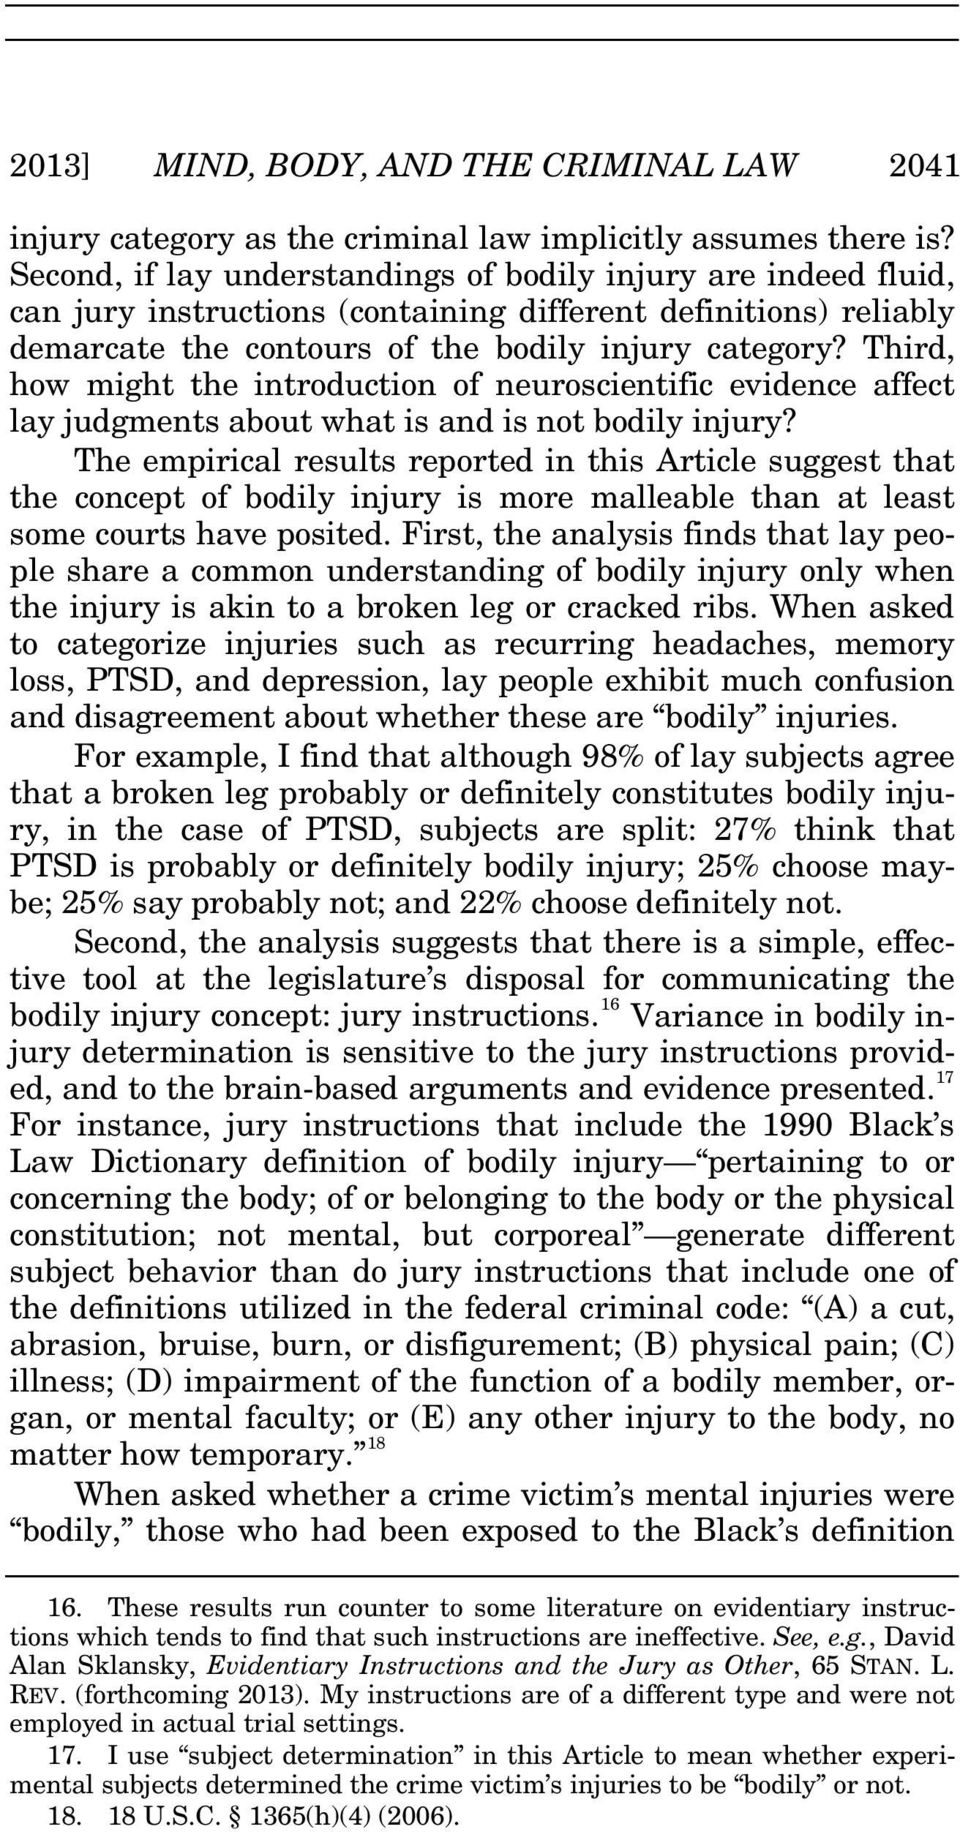 Third, how might the introduction of neuroscientific evidence affect lay judgments about what is and is not bodily injury?